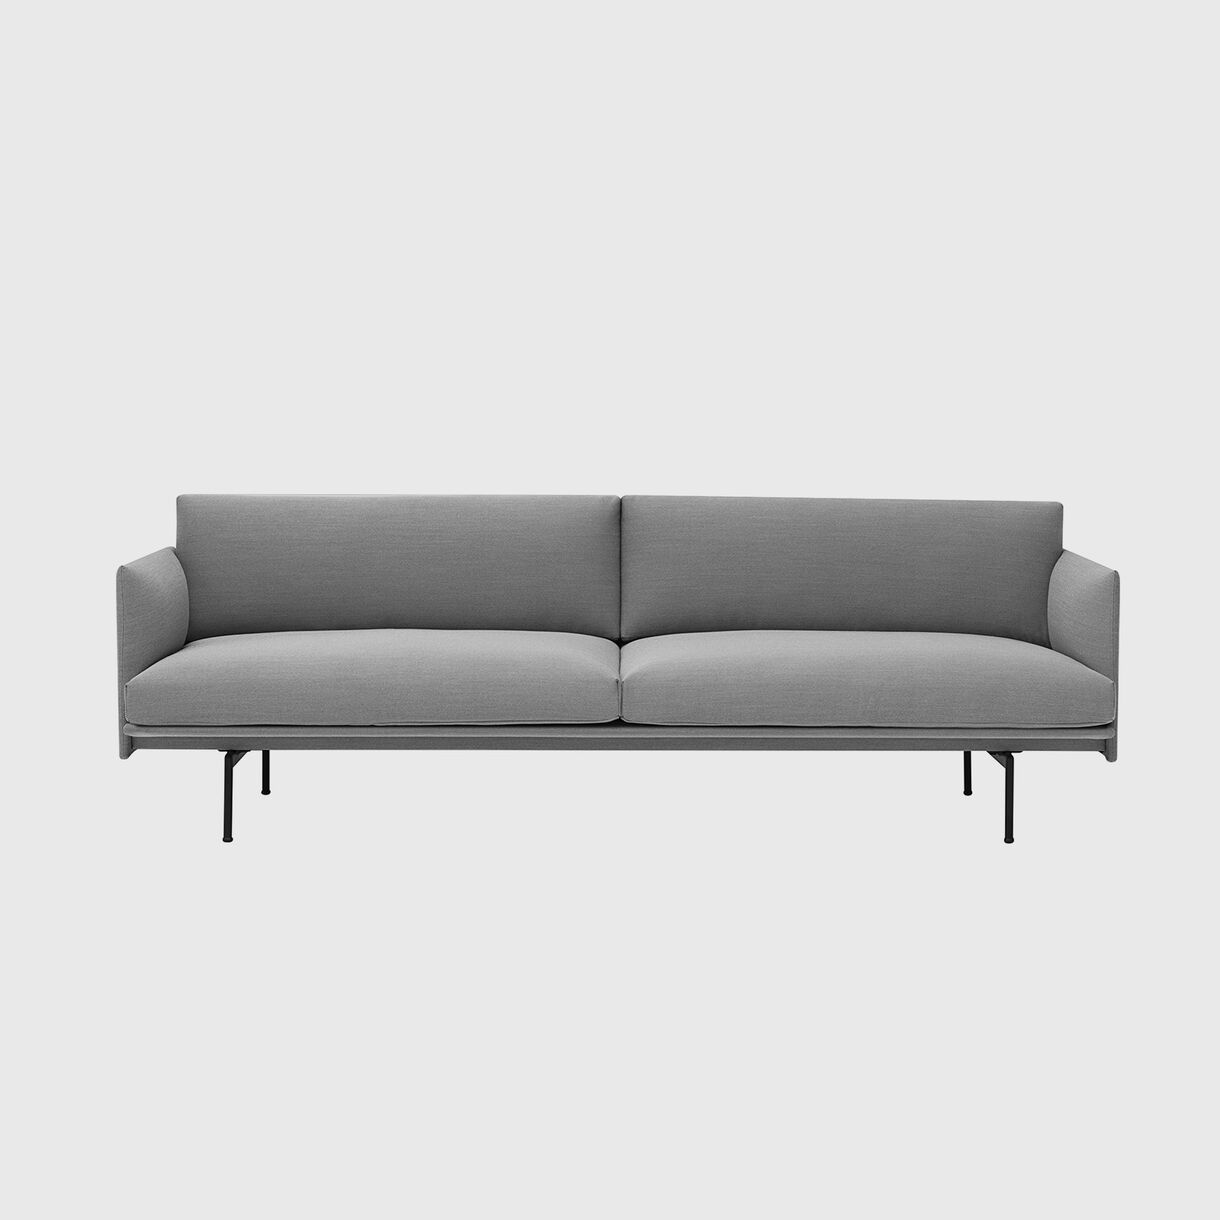 Outline 3 Seater Sofa, Vancouver 14